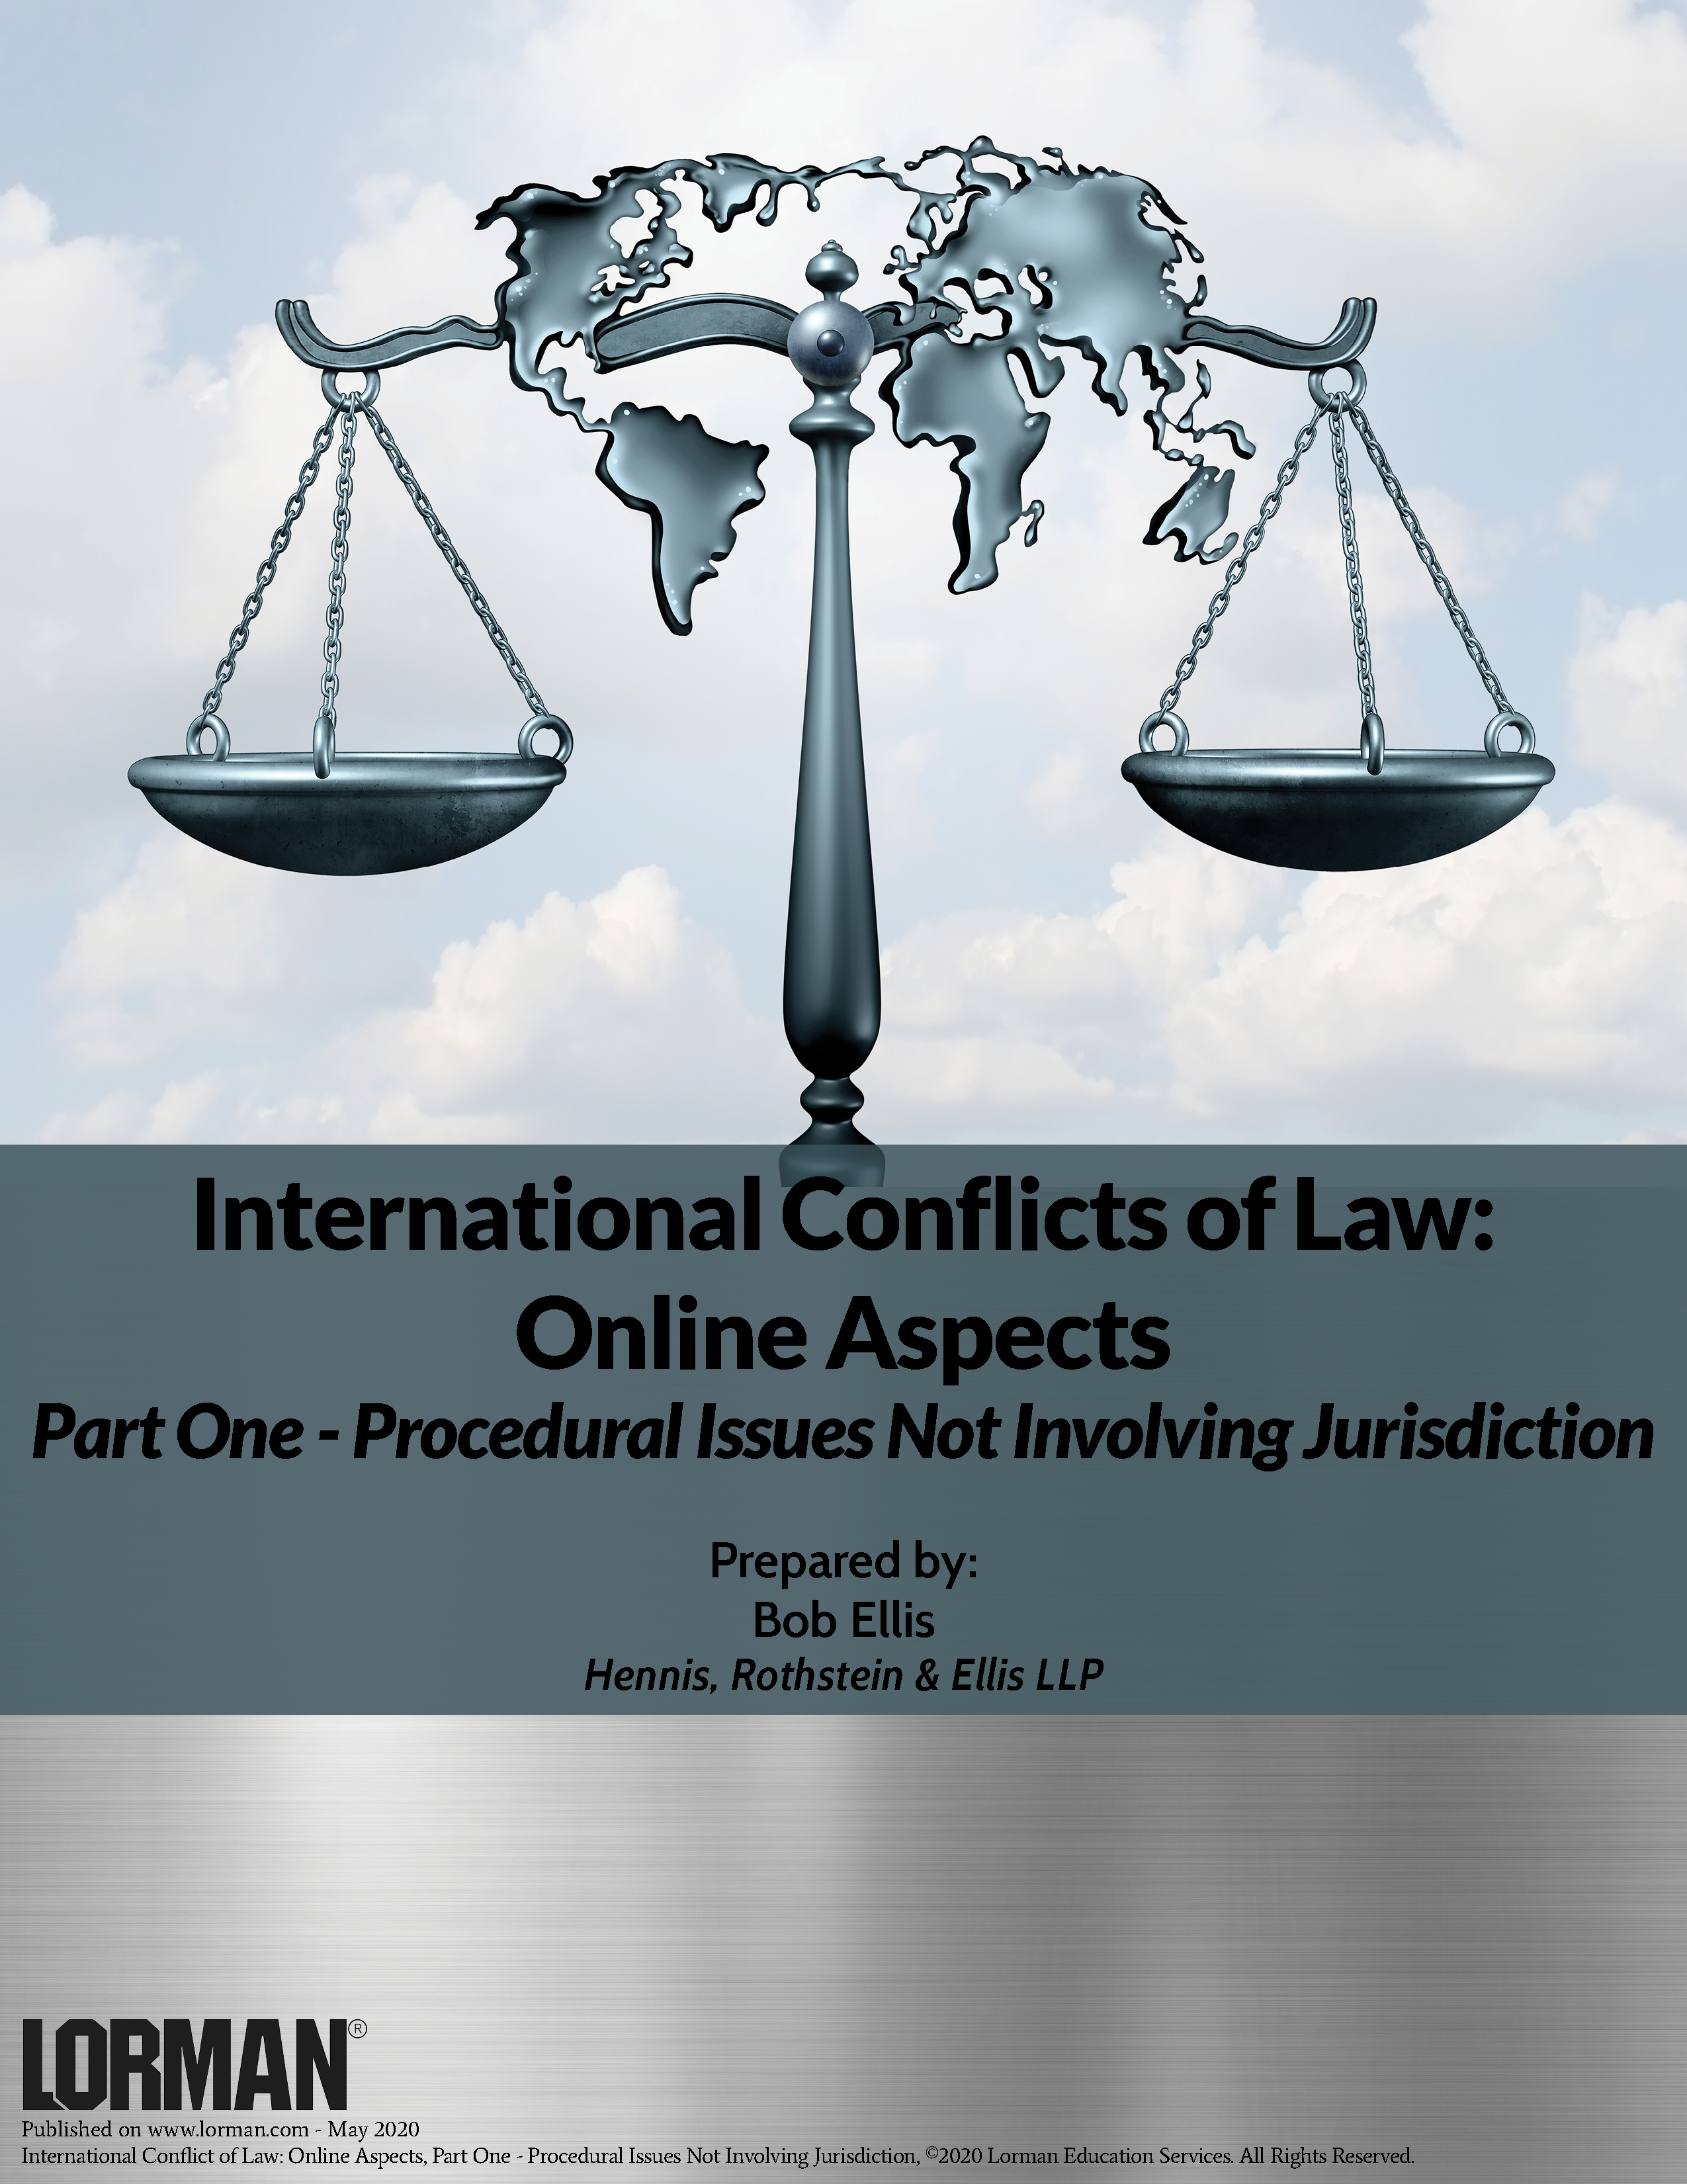 International Conflict of Law: Online Aspects - Procedural Issues Not Involving Jurisdiction